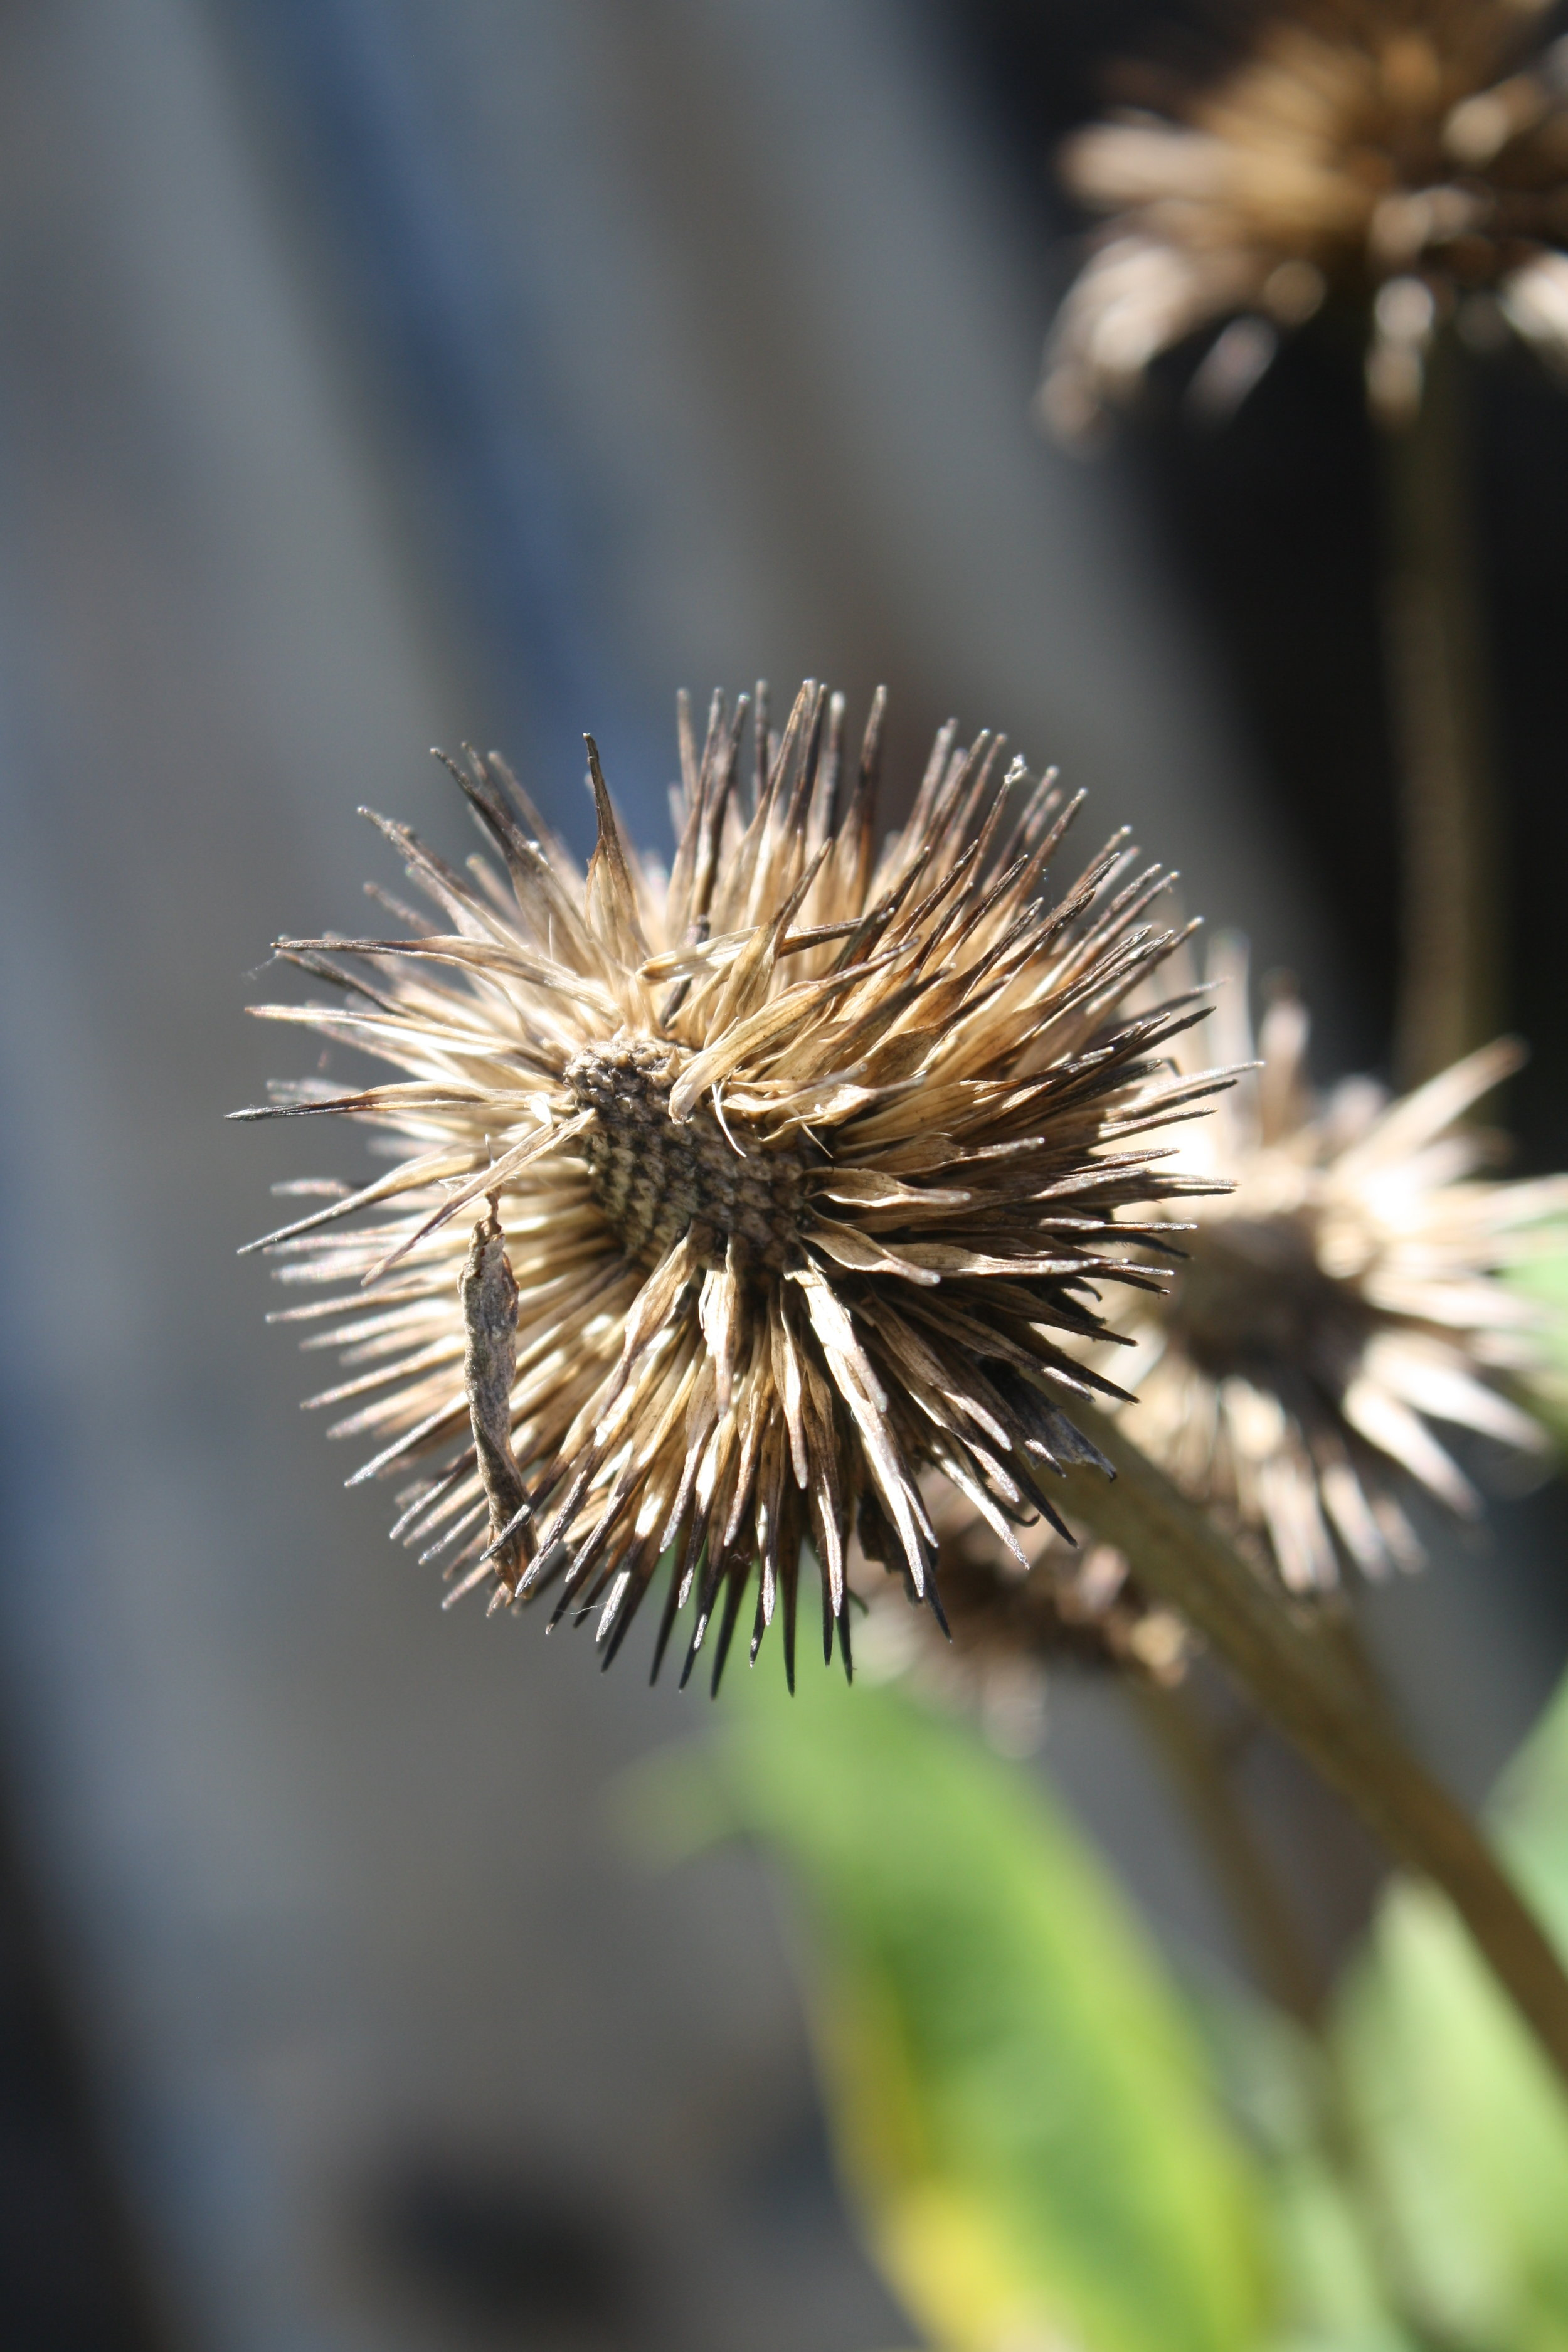 Dried Echinacea Cone of seeds.